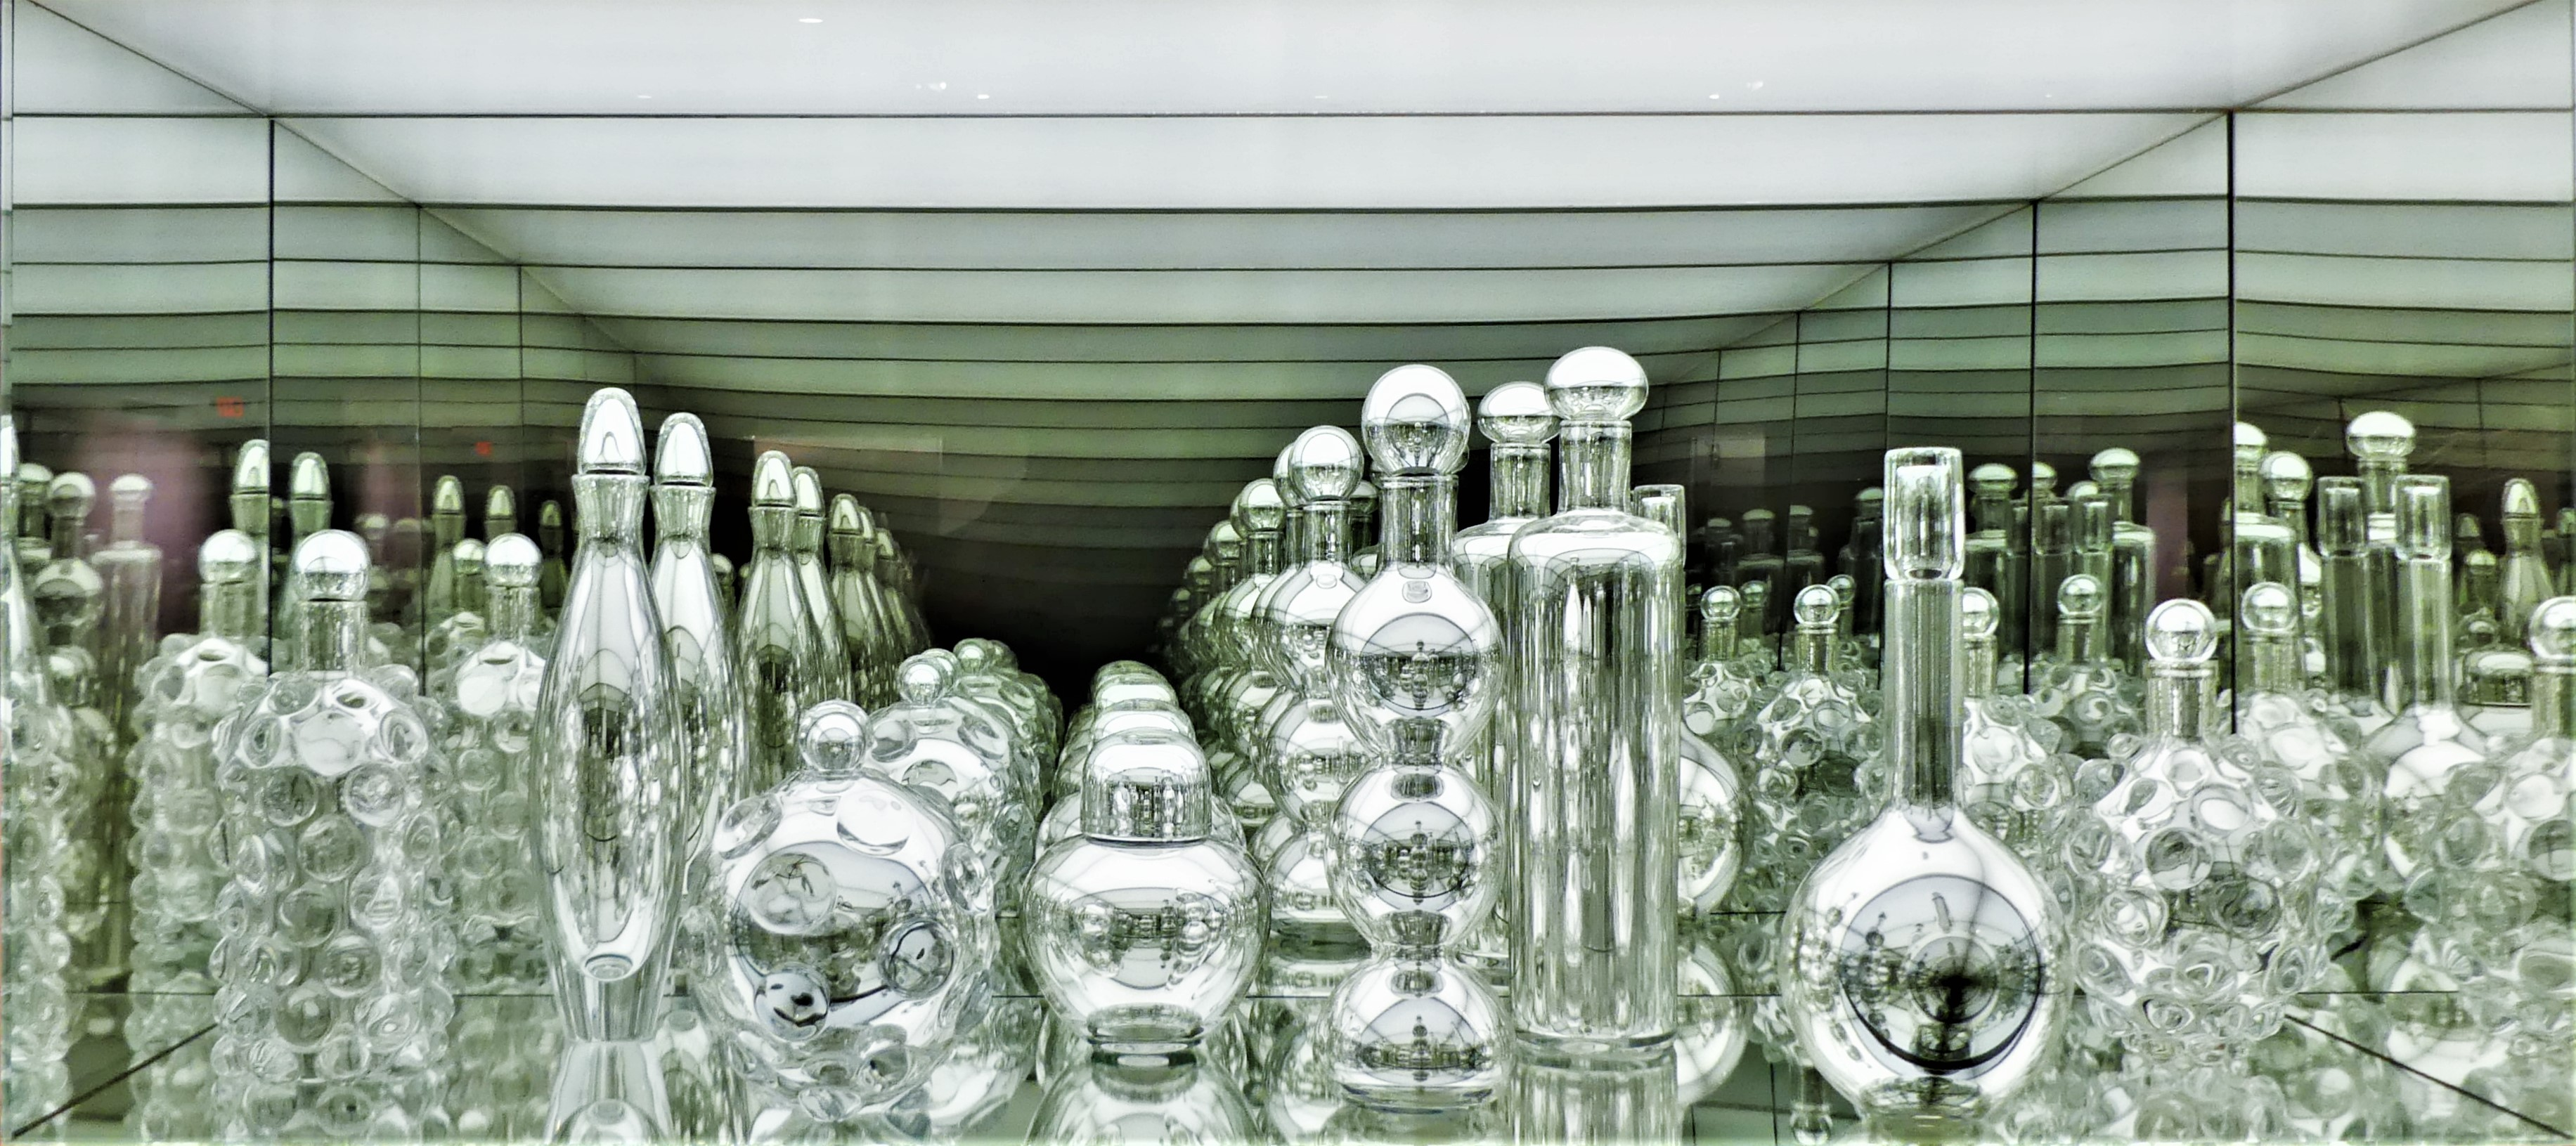 Glass and mirrors